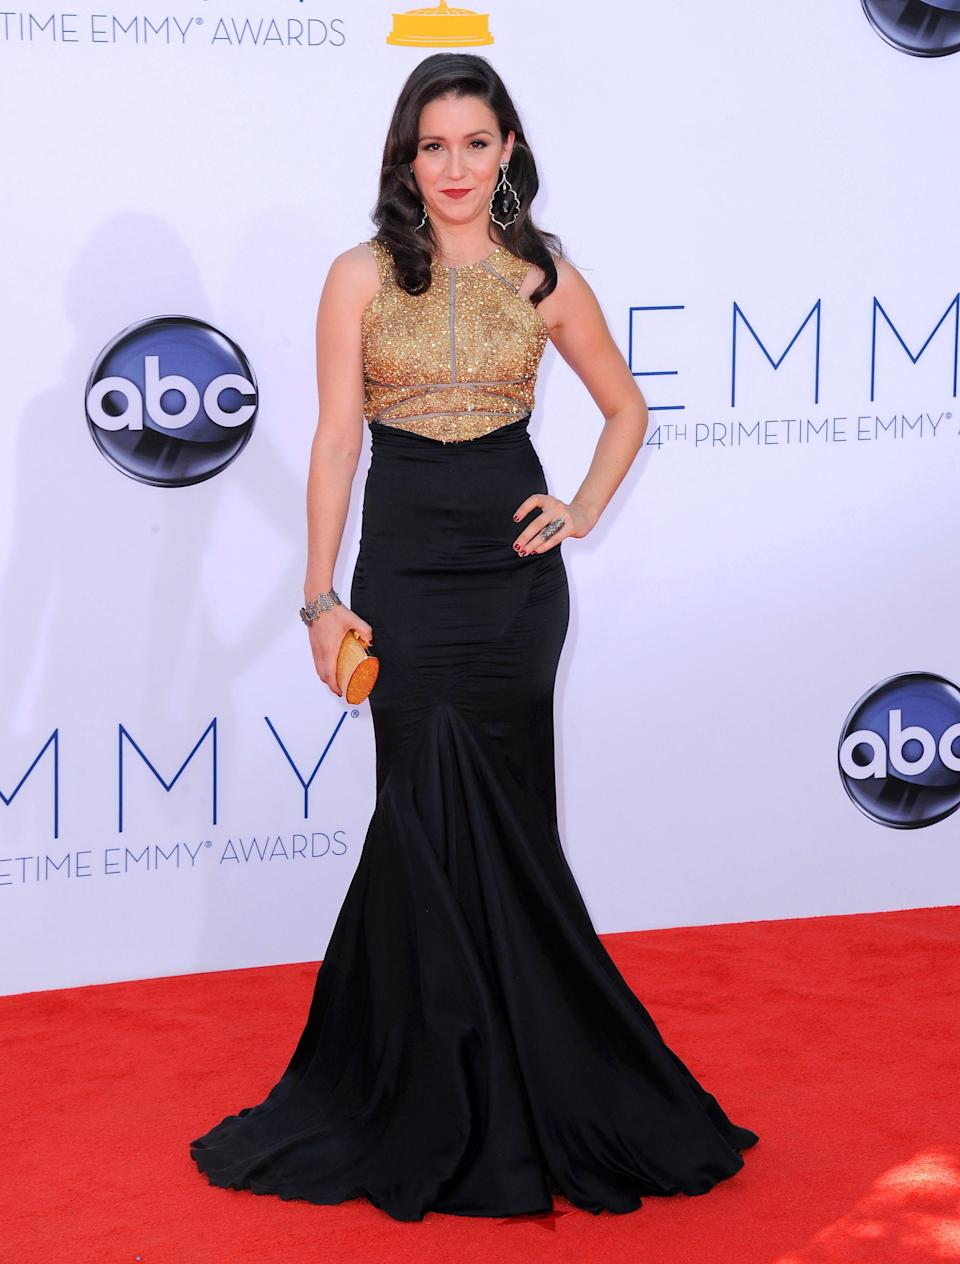 Actress Shannon Woodward arrives at the 64th Primetime Emmy Awards at the Nokia Theatre on Sunday, Sept. 23, 2012, in Los Angeles. (Photo by Jordan Strauss/Invision/AP)